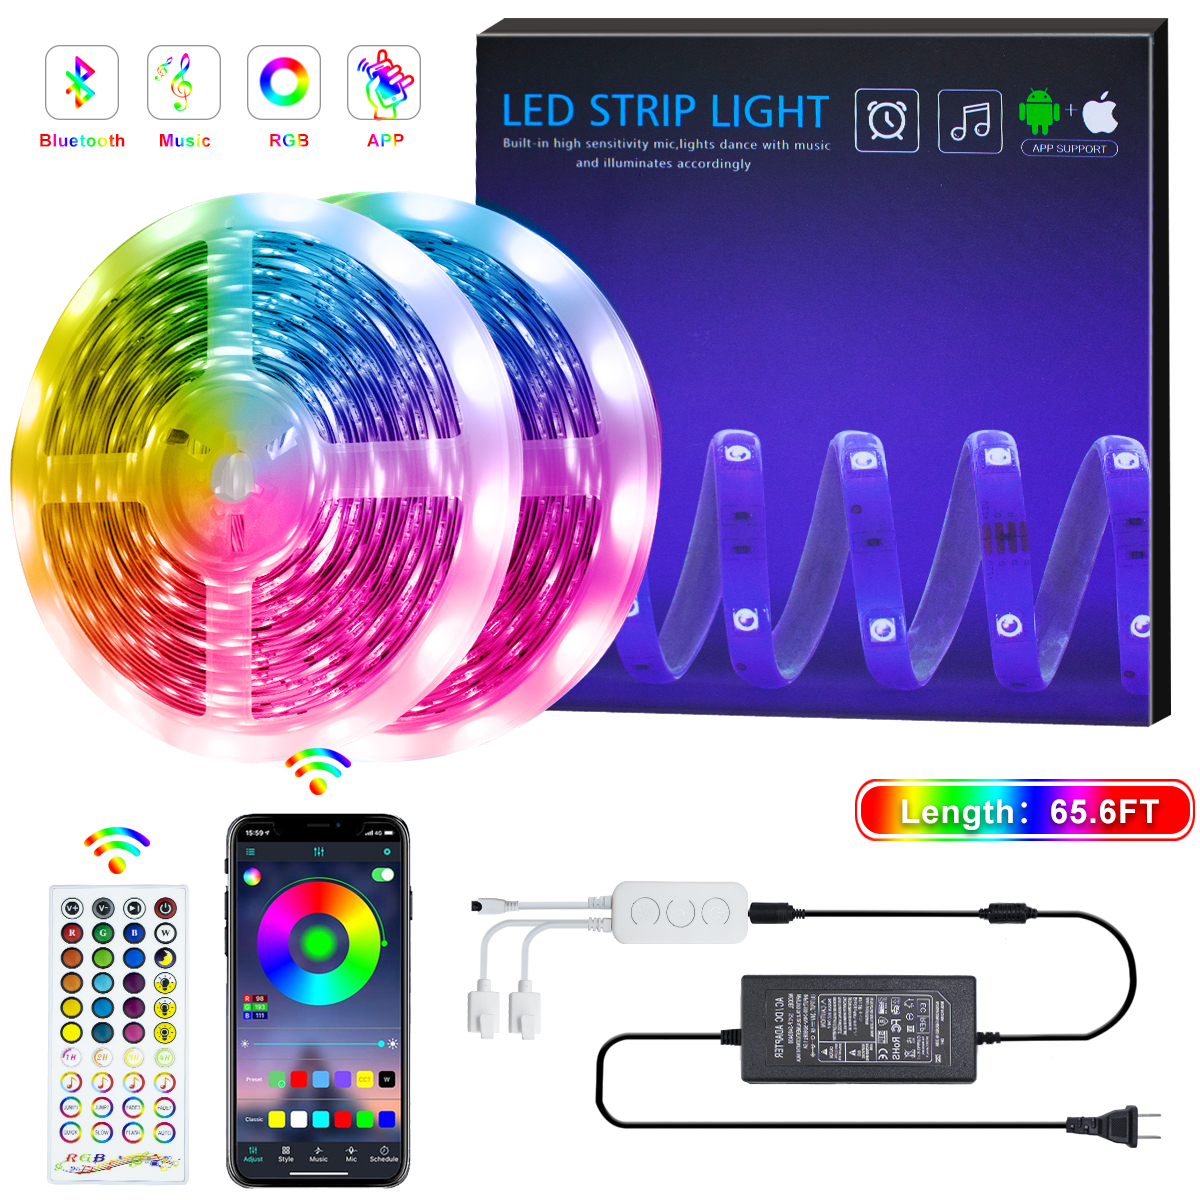 Bluetooth <font><b>LED</b></font> Strip Light SMD 5050 IP20 RGB Strip <font><b>LED</b></font> Light Flexible Ribbon <font><b>Stripe</b></font> DC <font><b>24V</b></font> RGB Diode Tape IR Controller Adapter image